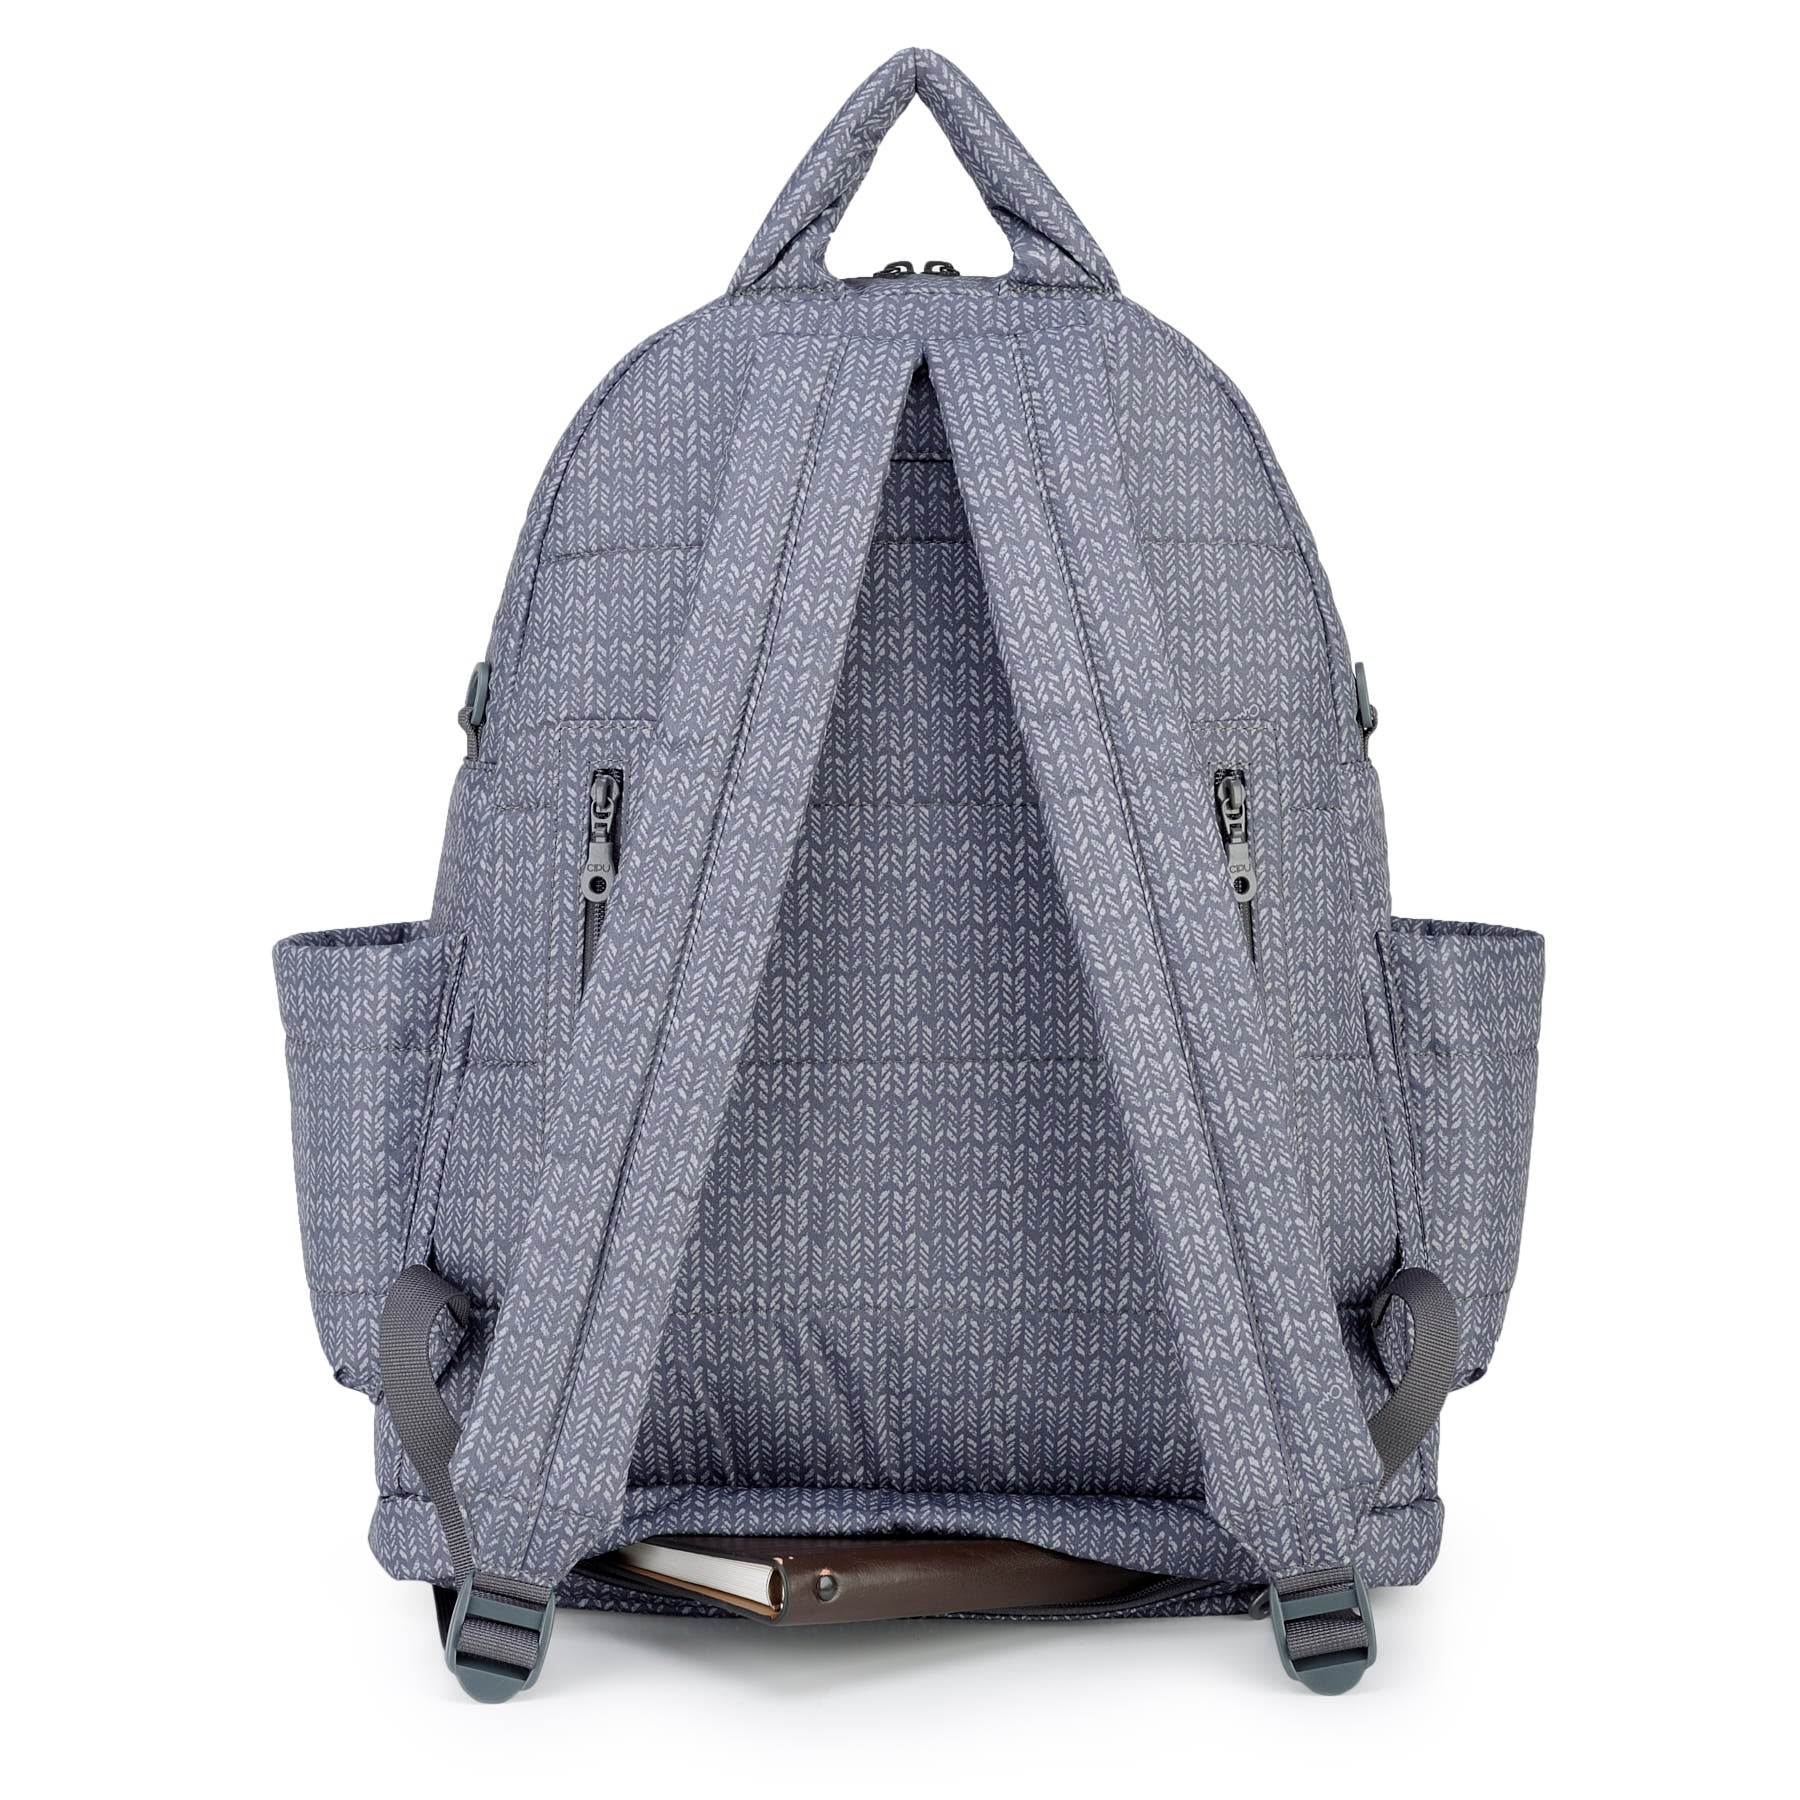 CiPU - Airy L Backpack - Knitted Grey